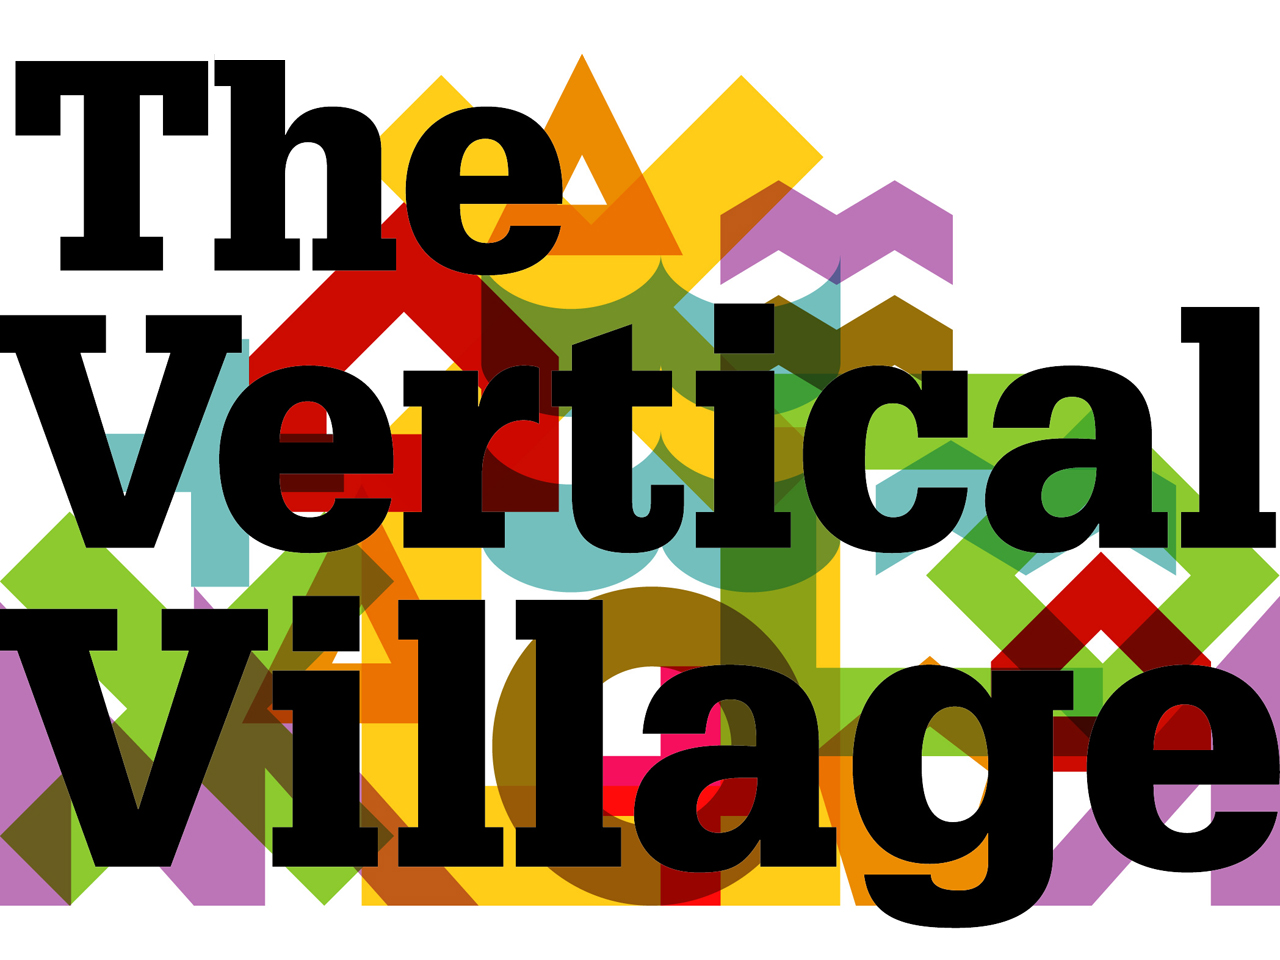 The Vertical Village Exhibition in Hamburg